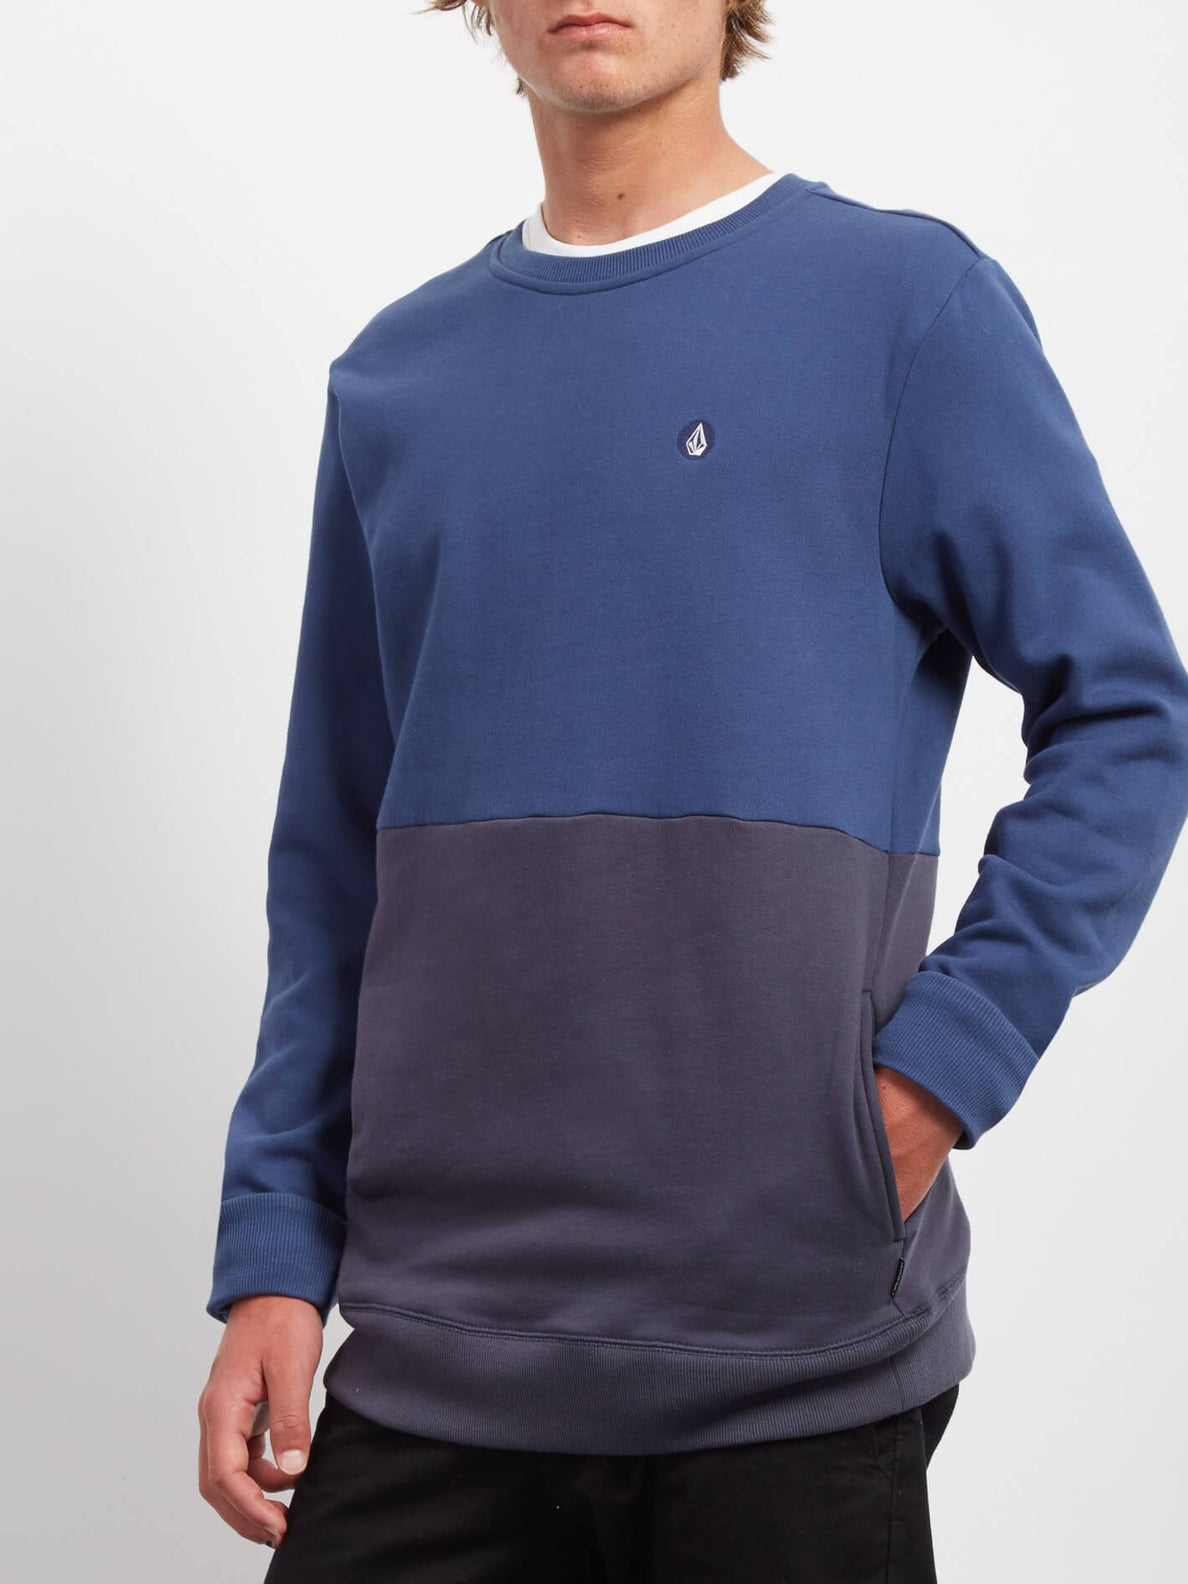 Single Stone Div Sweaters - Matured Blue